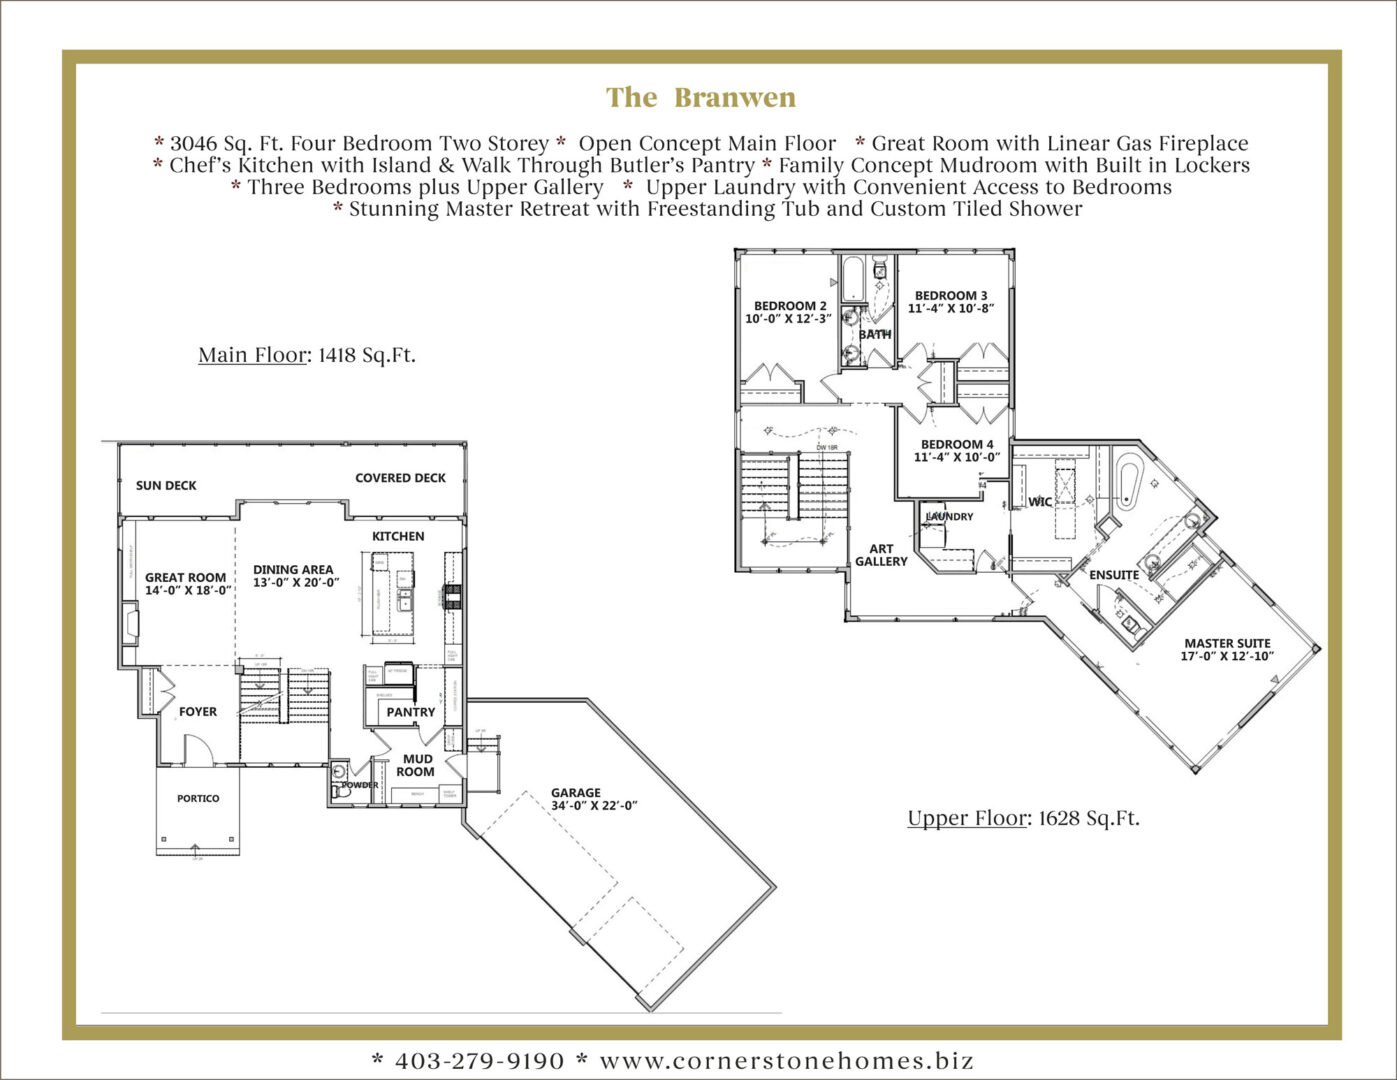 NEW-BRANWEN-Floor-Plans